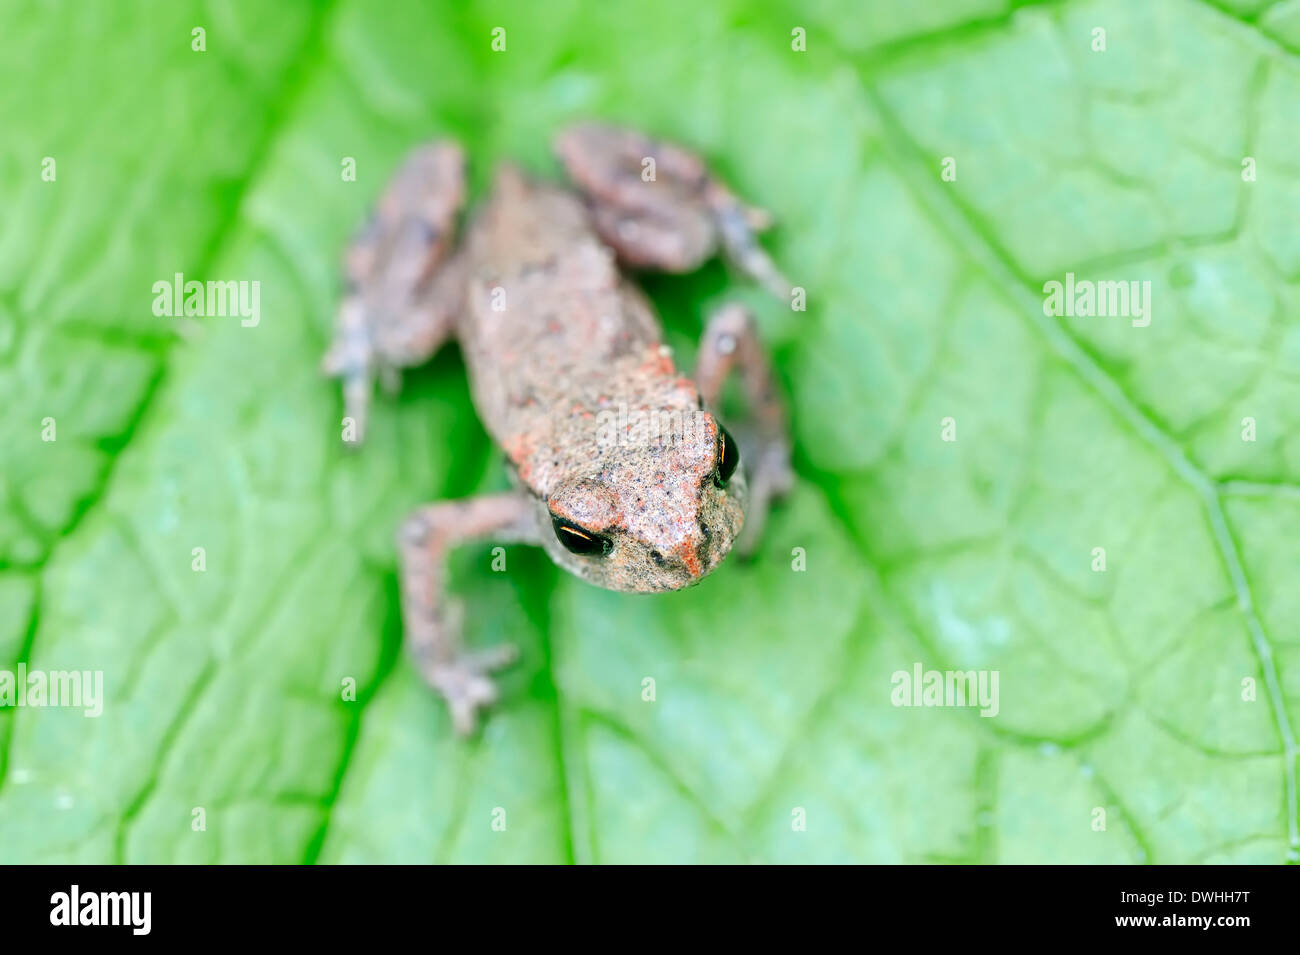 Common Toad or European Toad (Bufo bufo), juvenile, North Rhine-Westphalia, Germany - Stock Image